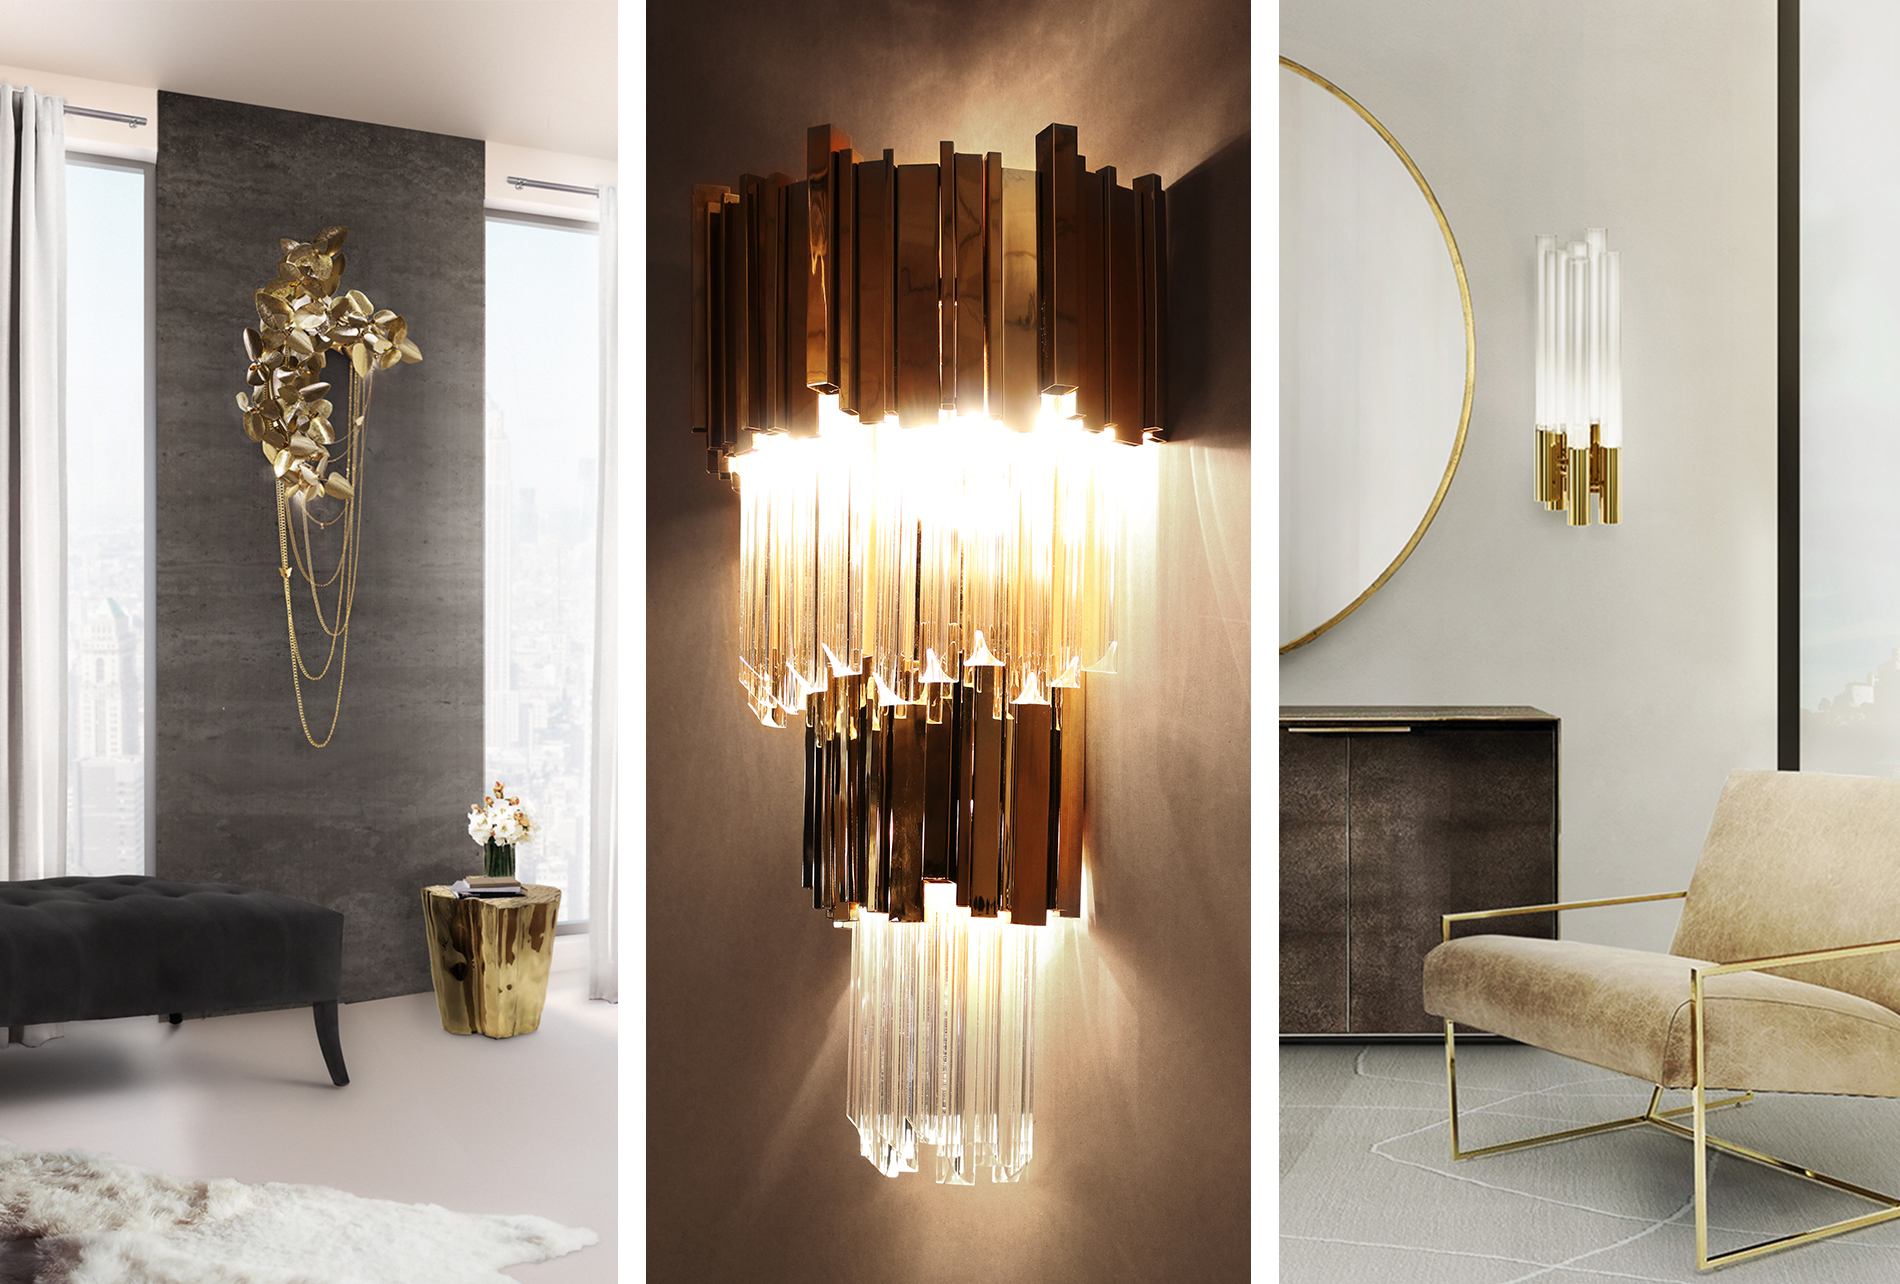 Luxury design: wall lights by Luxxu to create a glamorous decor table lamps Modern design table lamps for luxury hotels Luxxu Wall Lamps table lamps Modern design table lamps for luxury hotels Luxxu Wall Lamps